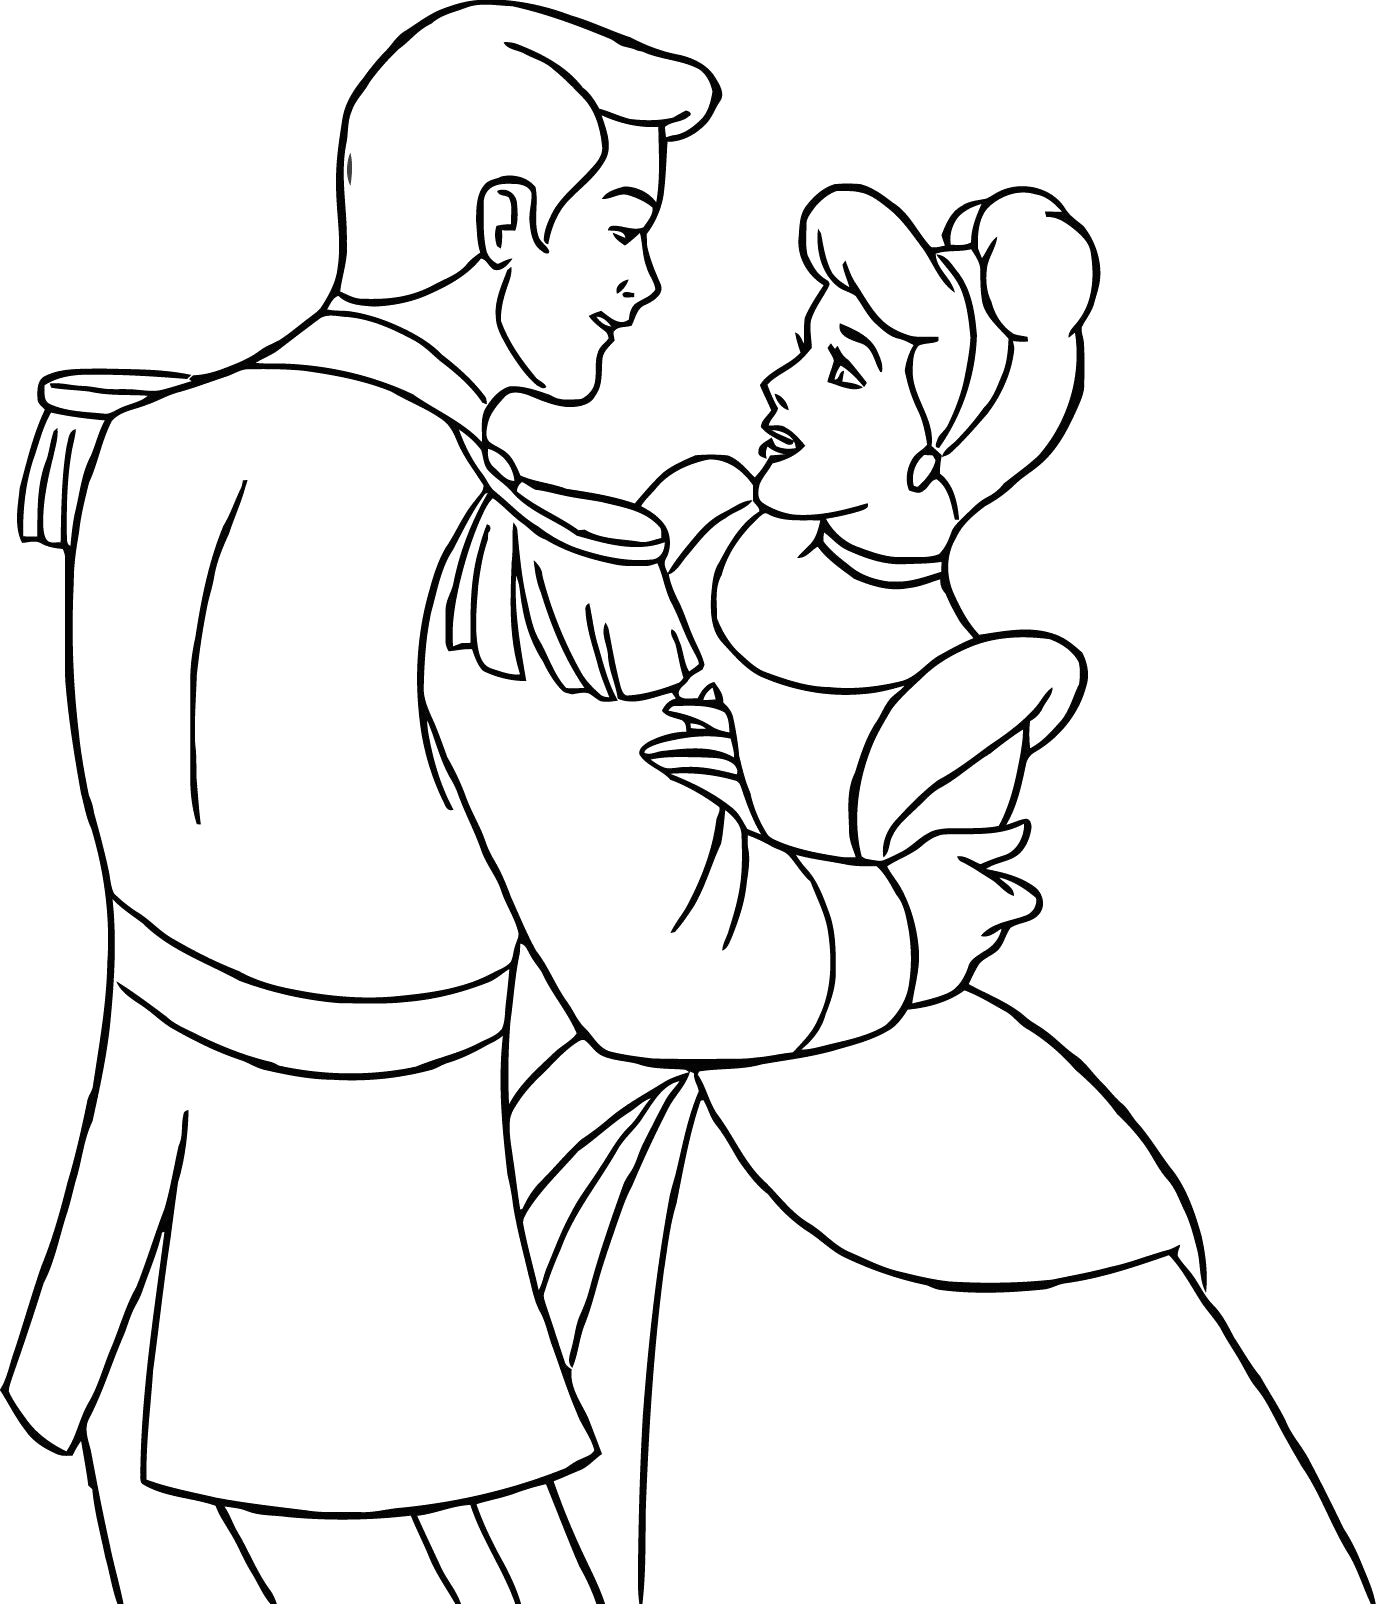 Coloring Pages Of Cinderella and Prince Charming Cinderella Prince Charming Coloring Pages at Getcolorings